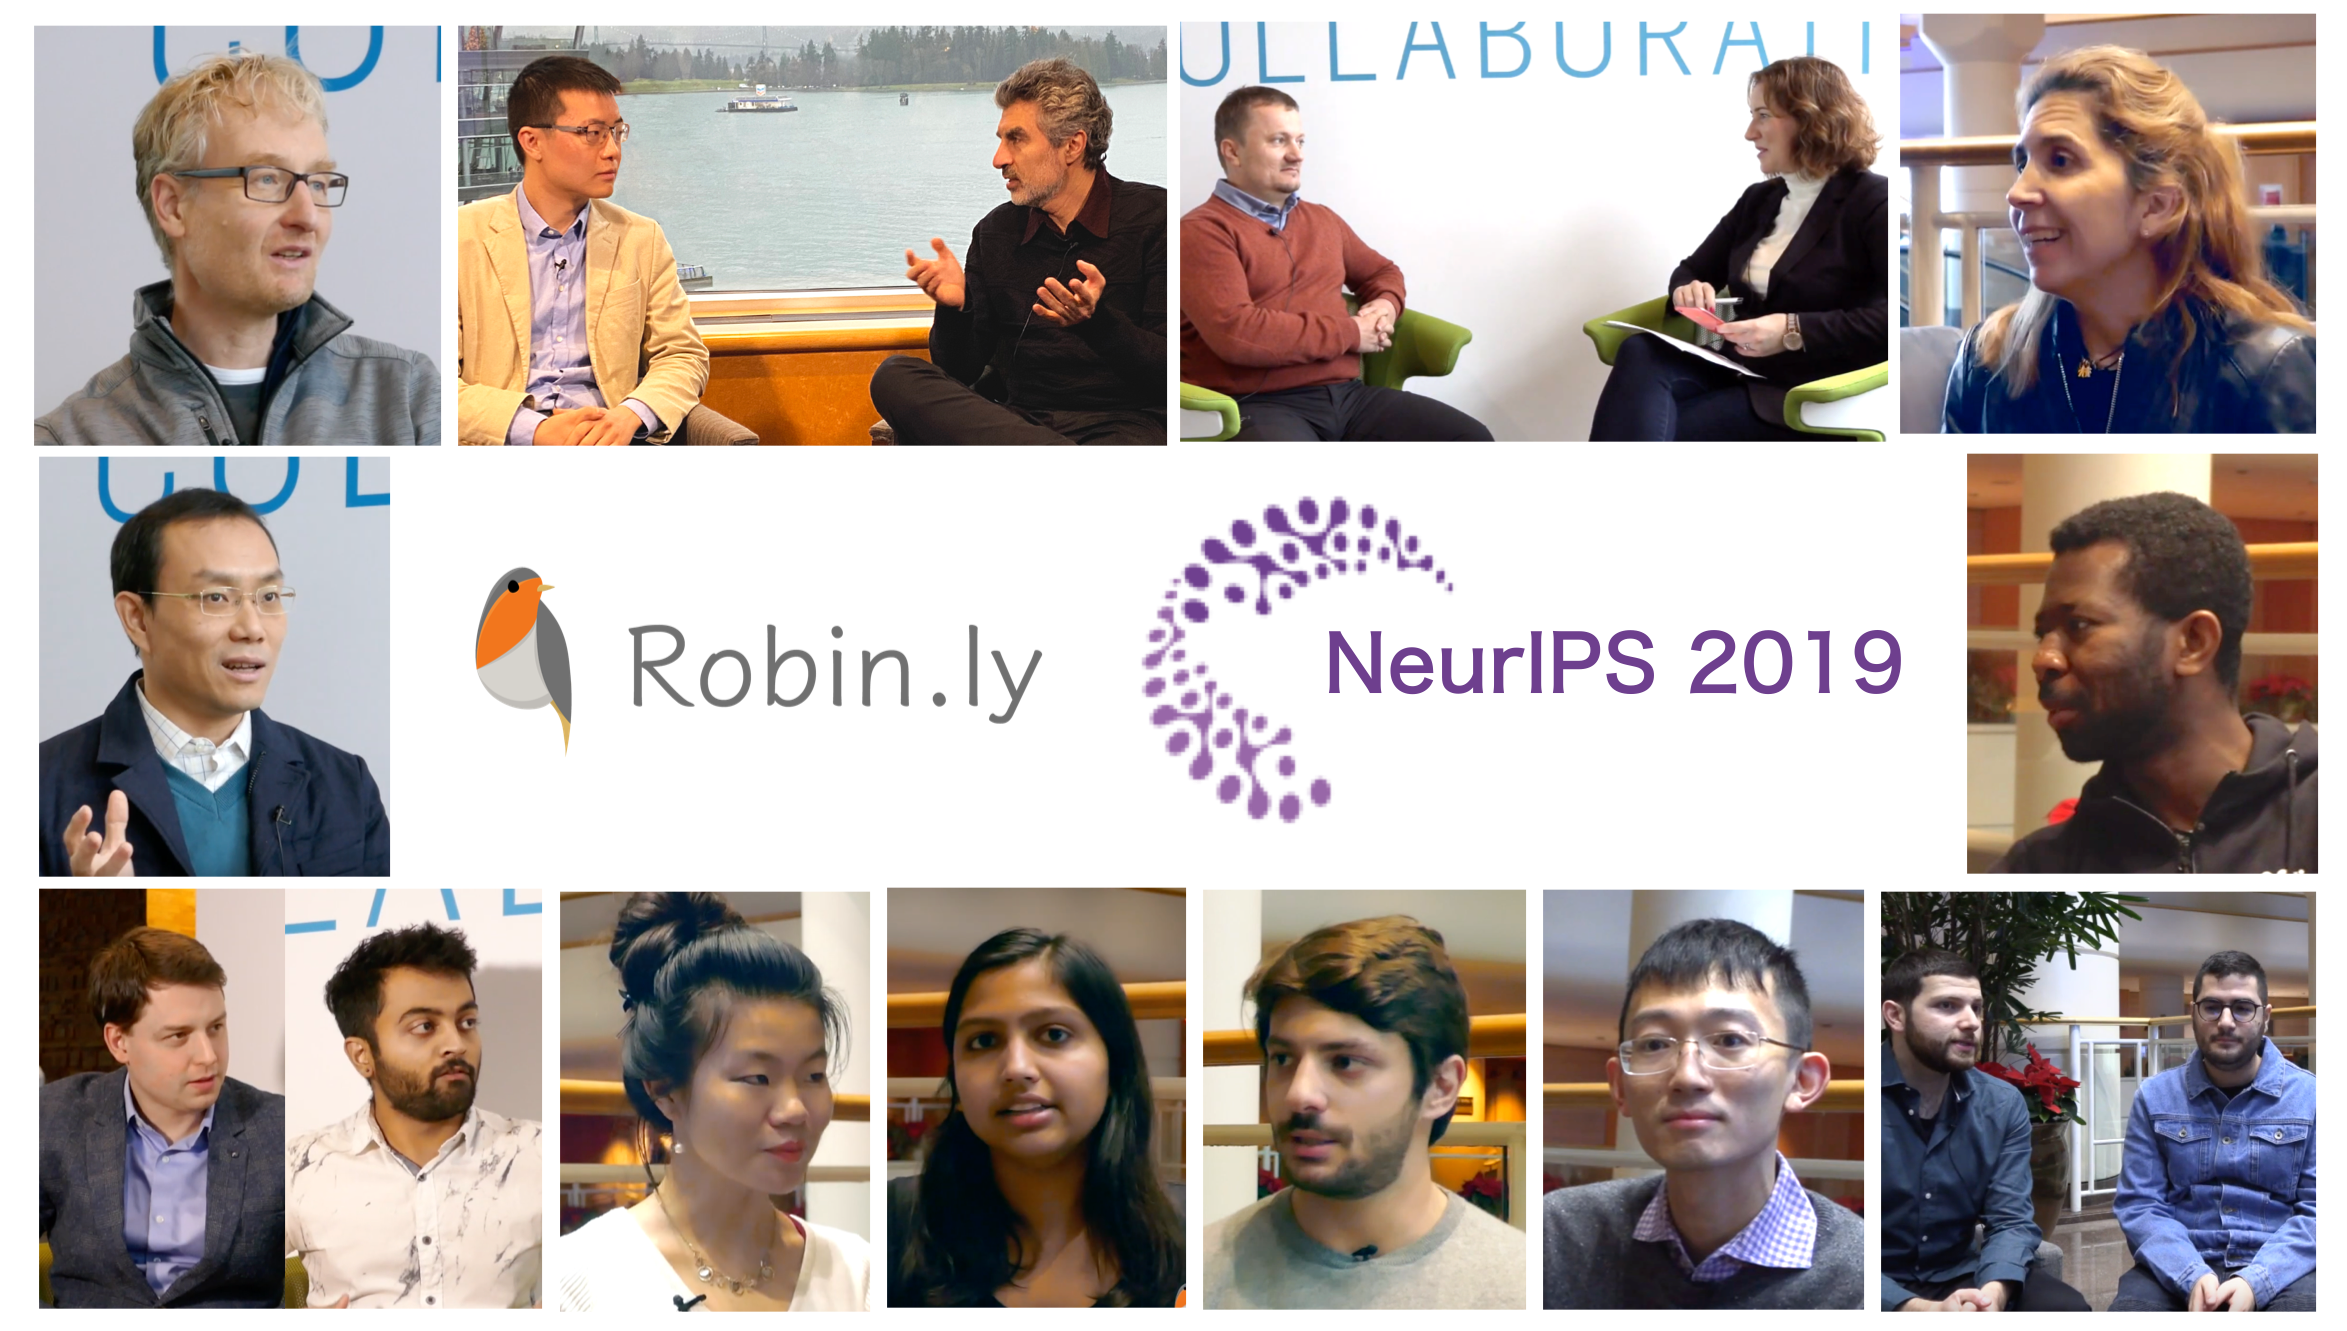 NeurIPS 2019 - Robinl.ly